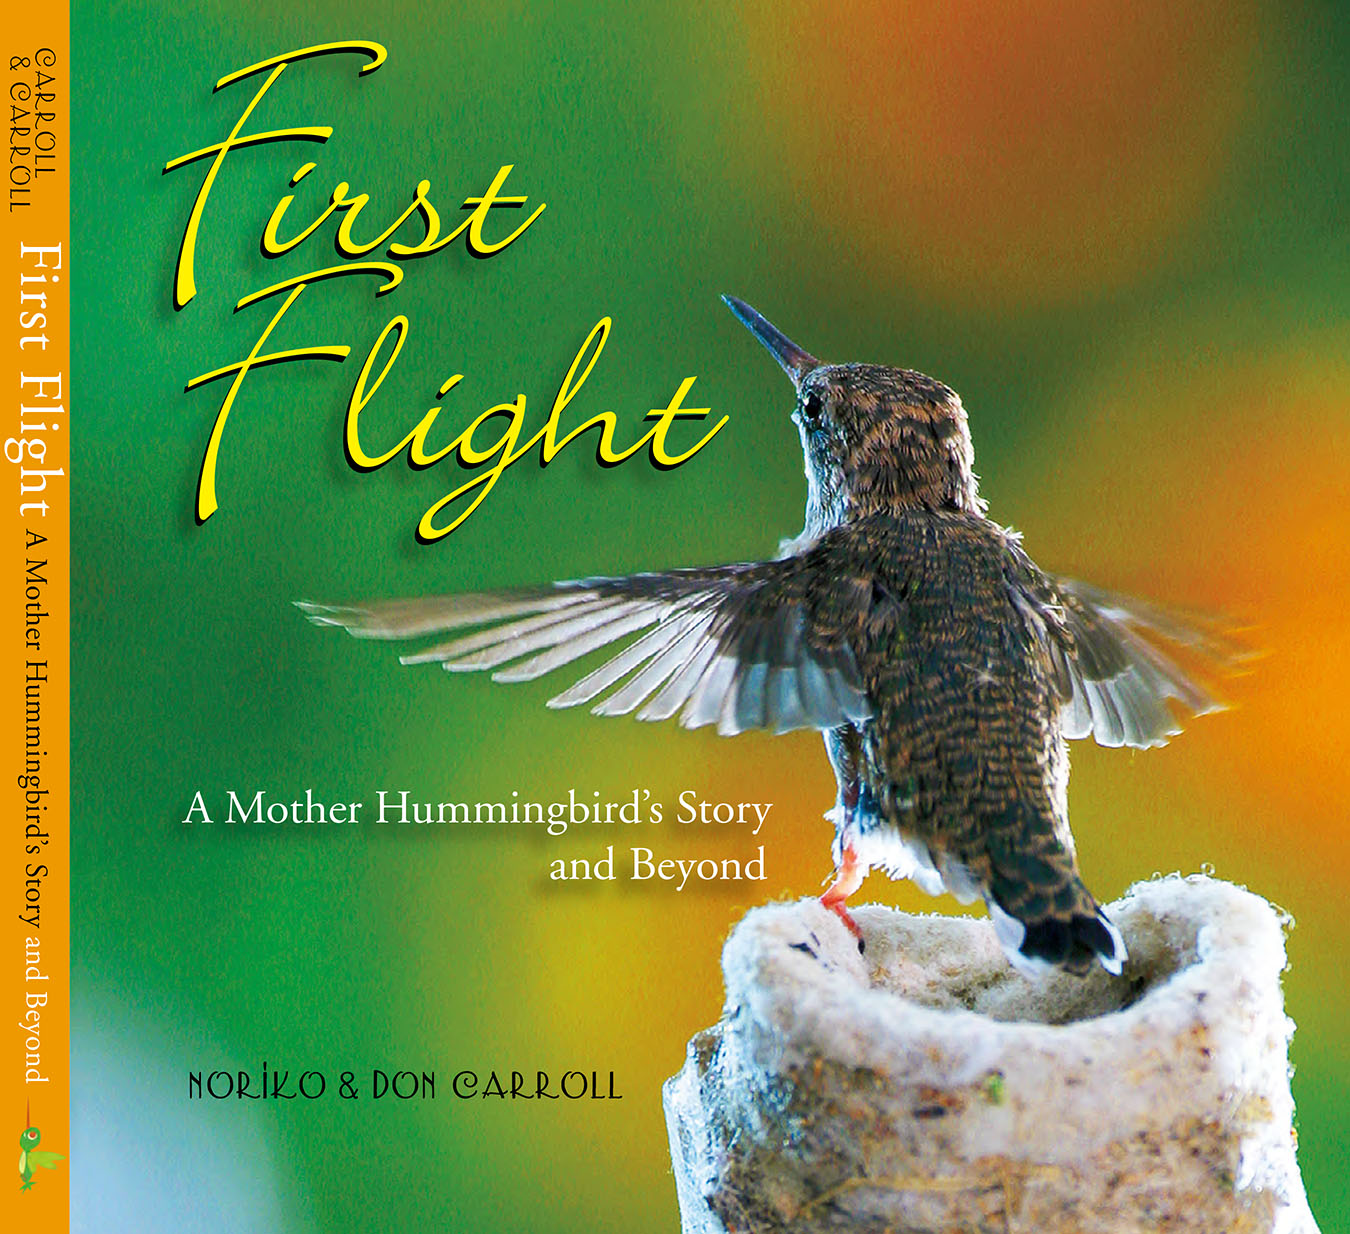 First Flight is the beautifully photographed story of Honey and her two chicks, Ray and Zen. In over fifty stunning, full-color close-ups, it captures the grace, the beauty, and the simultaneous strength and fragility of one of nature's tiniest birds. Professional photographer Don Carroll's images of his tiny housemates are woven throughout with Noriko's charming narrative describing the mother bird and her developing brood. Not just for bird enthusiasts, First Flight is a magical mix of hummingbird field guide, personal story, and new life taking flight. Readers will be captivated by the inherent drama as it unfolds in miniature, and they'll cheer as babies Ray and Zen make their own first flights out into a bright new world.